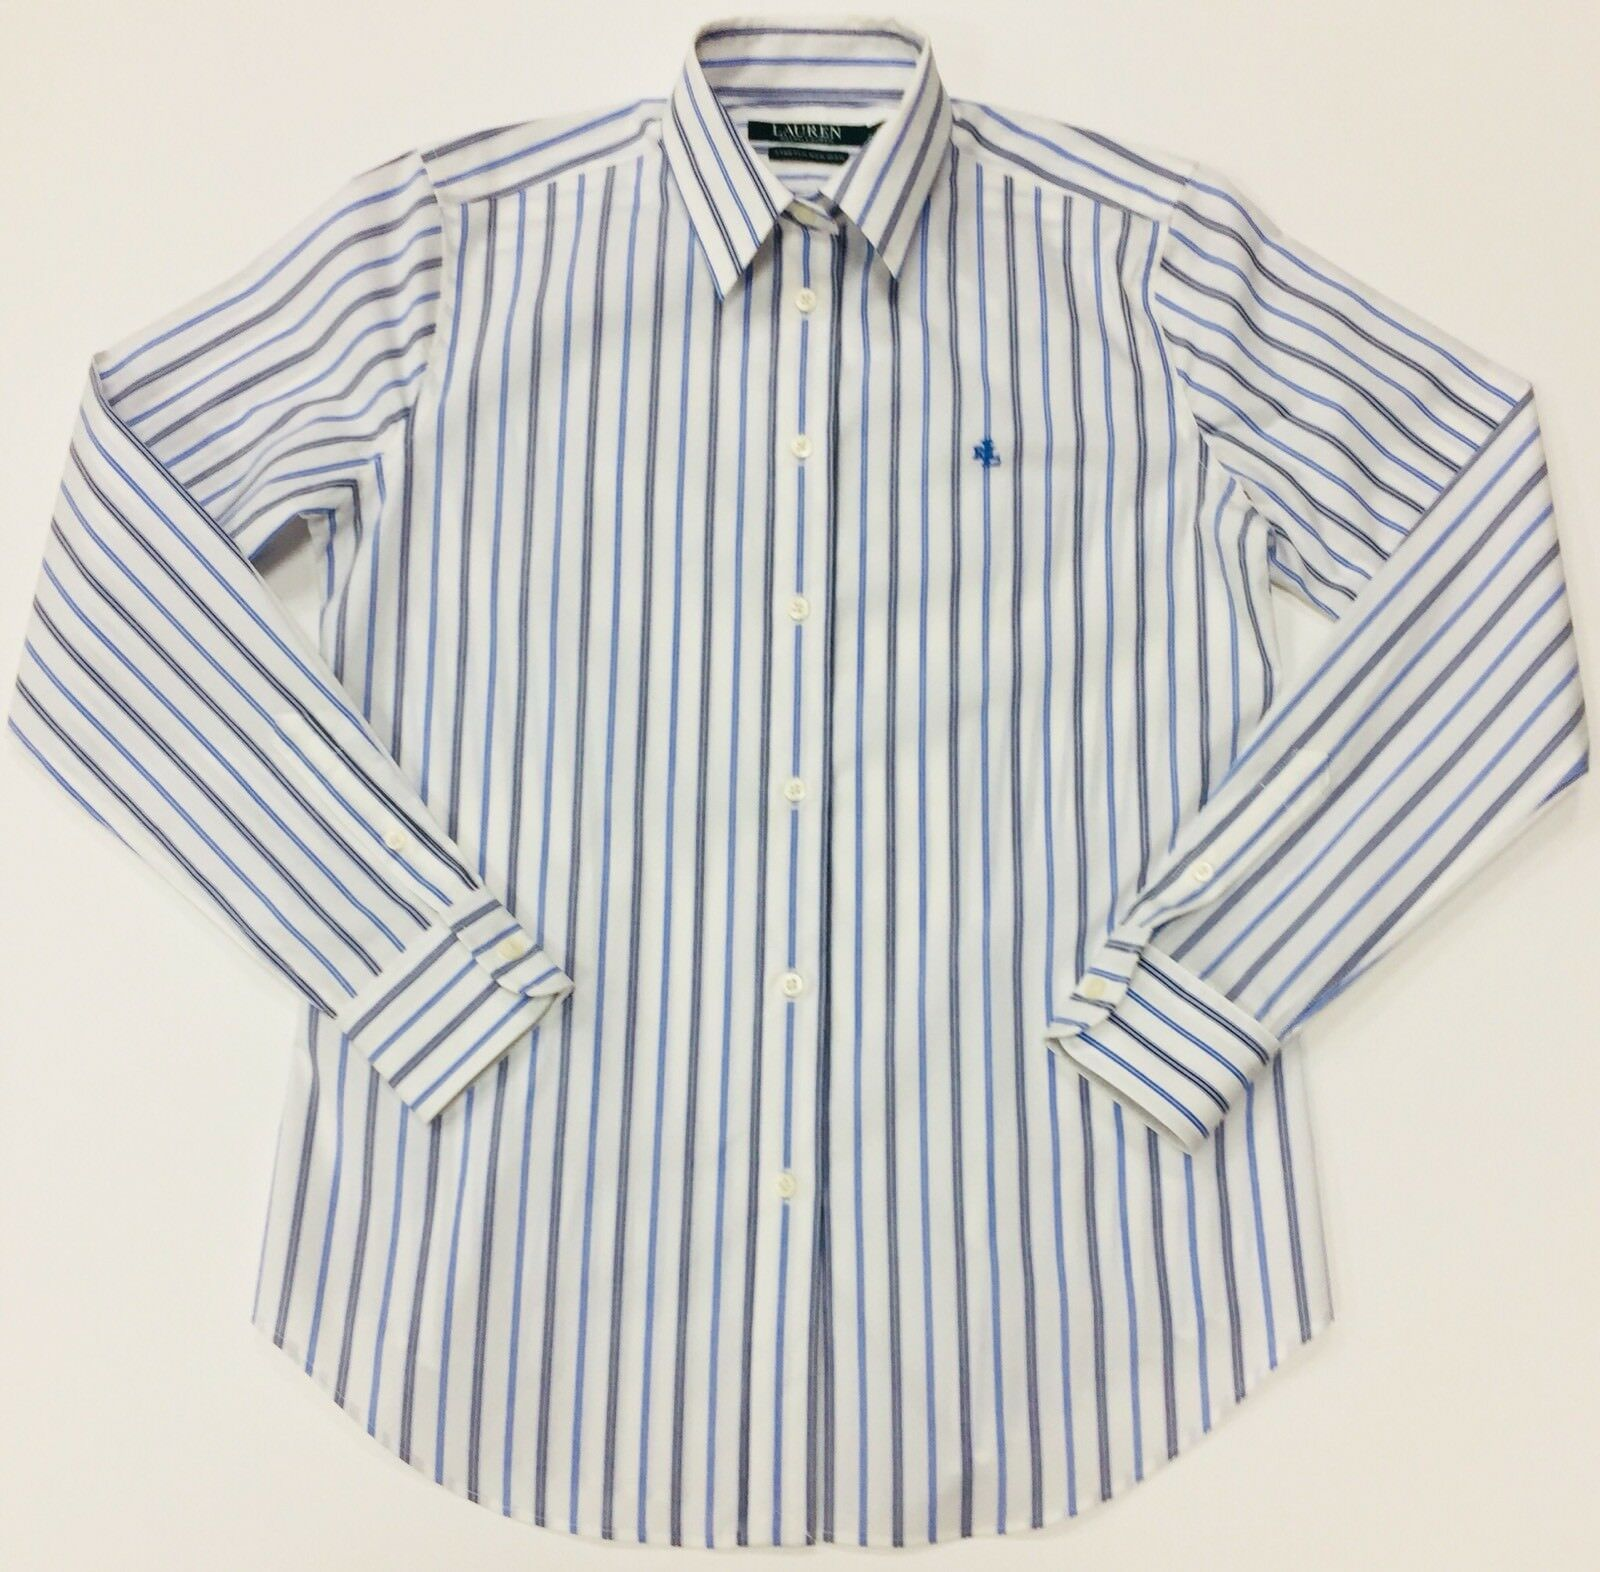 RALPH LAUREN LAUREN COTTON NON IRON daMänner STRIPED Hemd